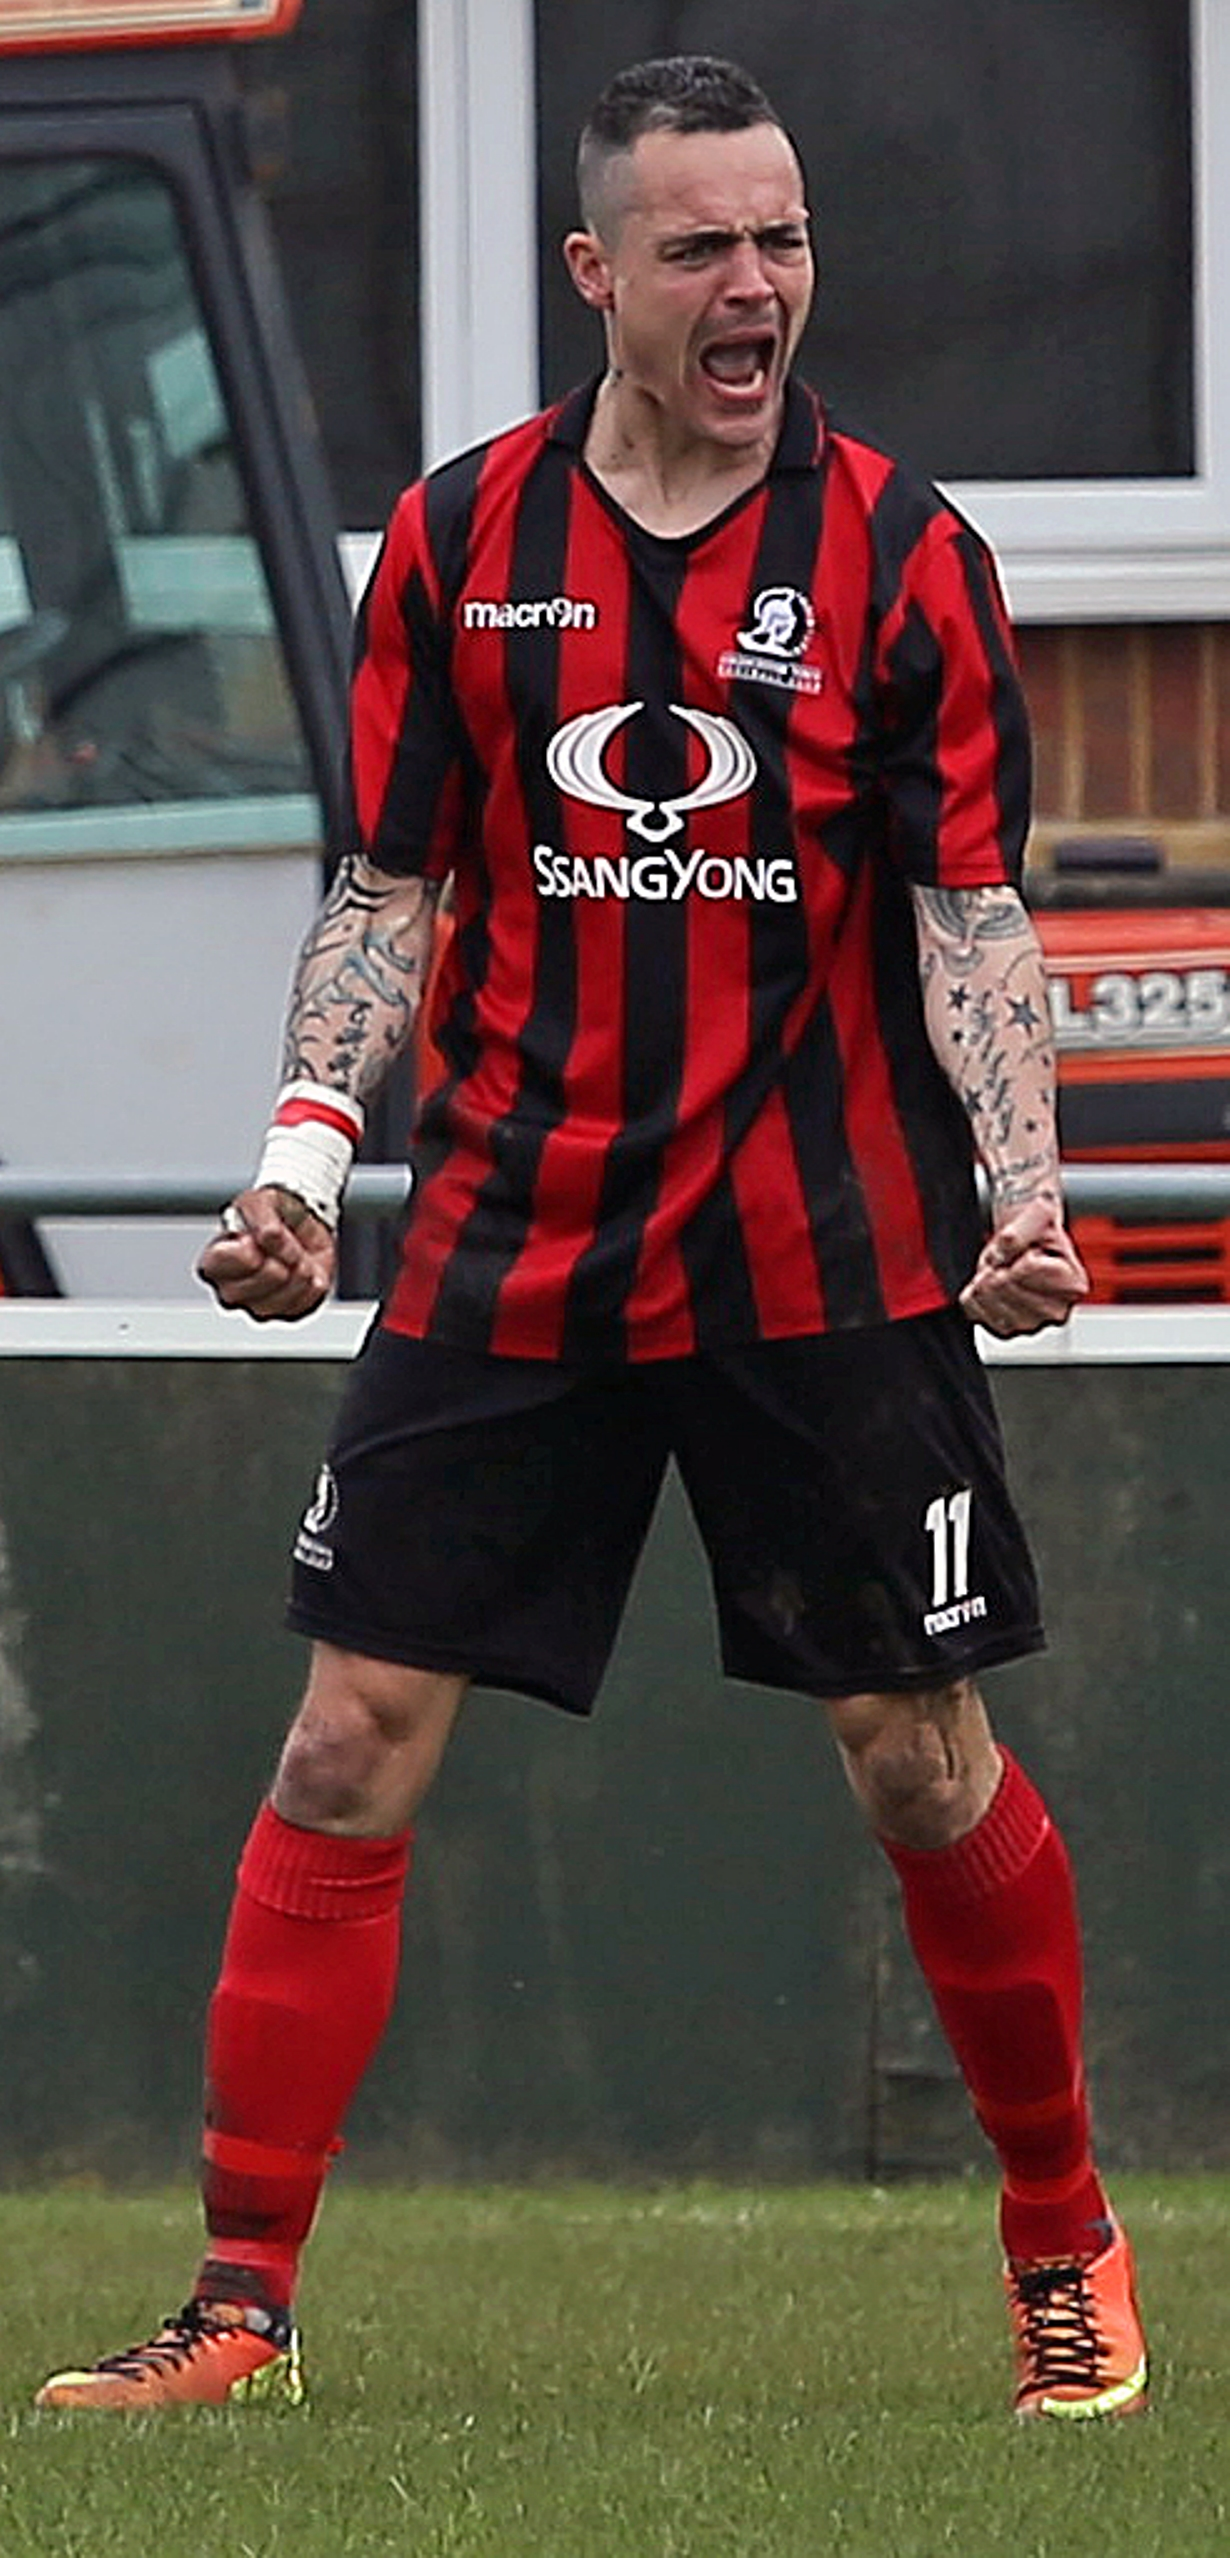 Cirencester Town striker Lee Smith had agreed to join the Bluebirds before signing for Hungerford